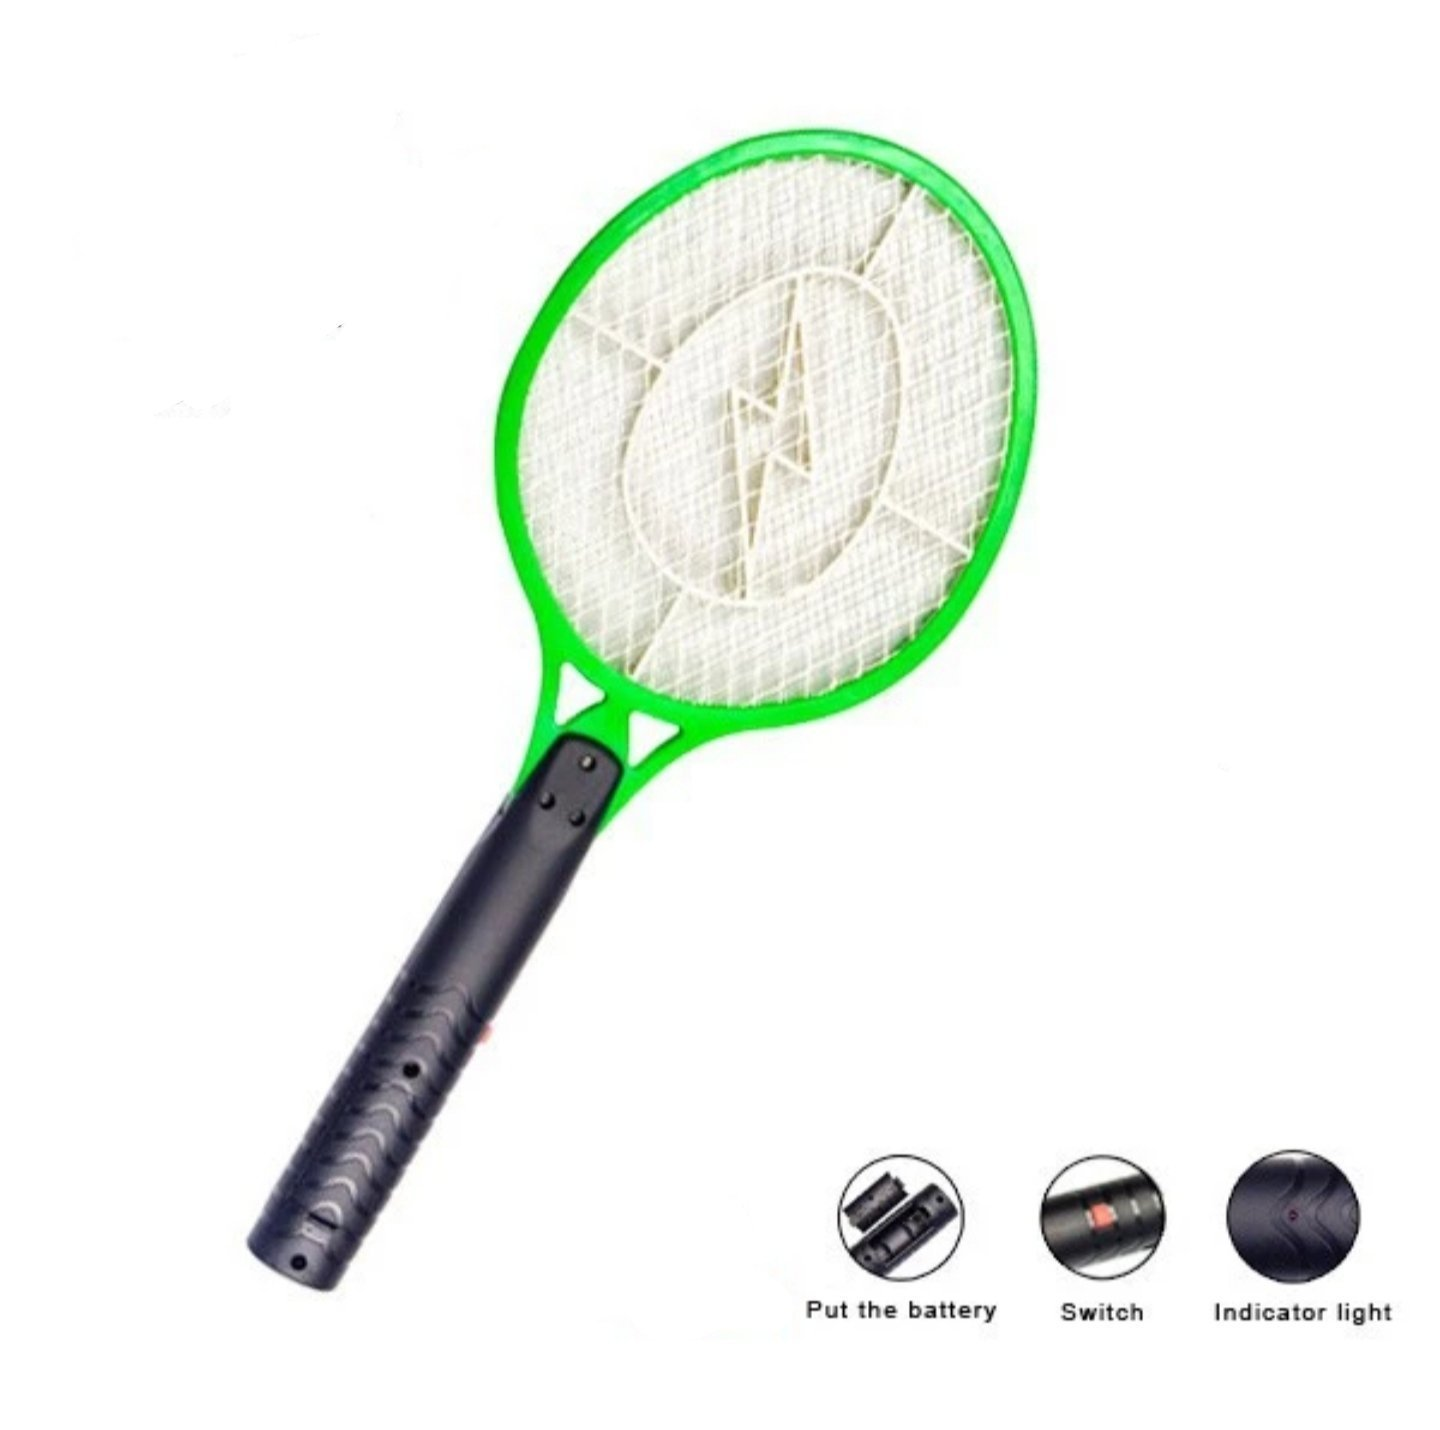 Handheld Bug Zapper Electric Bug Zapper Fly/Mosquito Swatter Best for Indoor and Outdoor Pest Control by Zapz (Image #2)